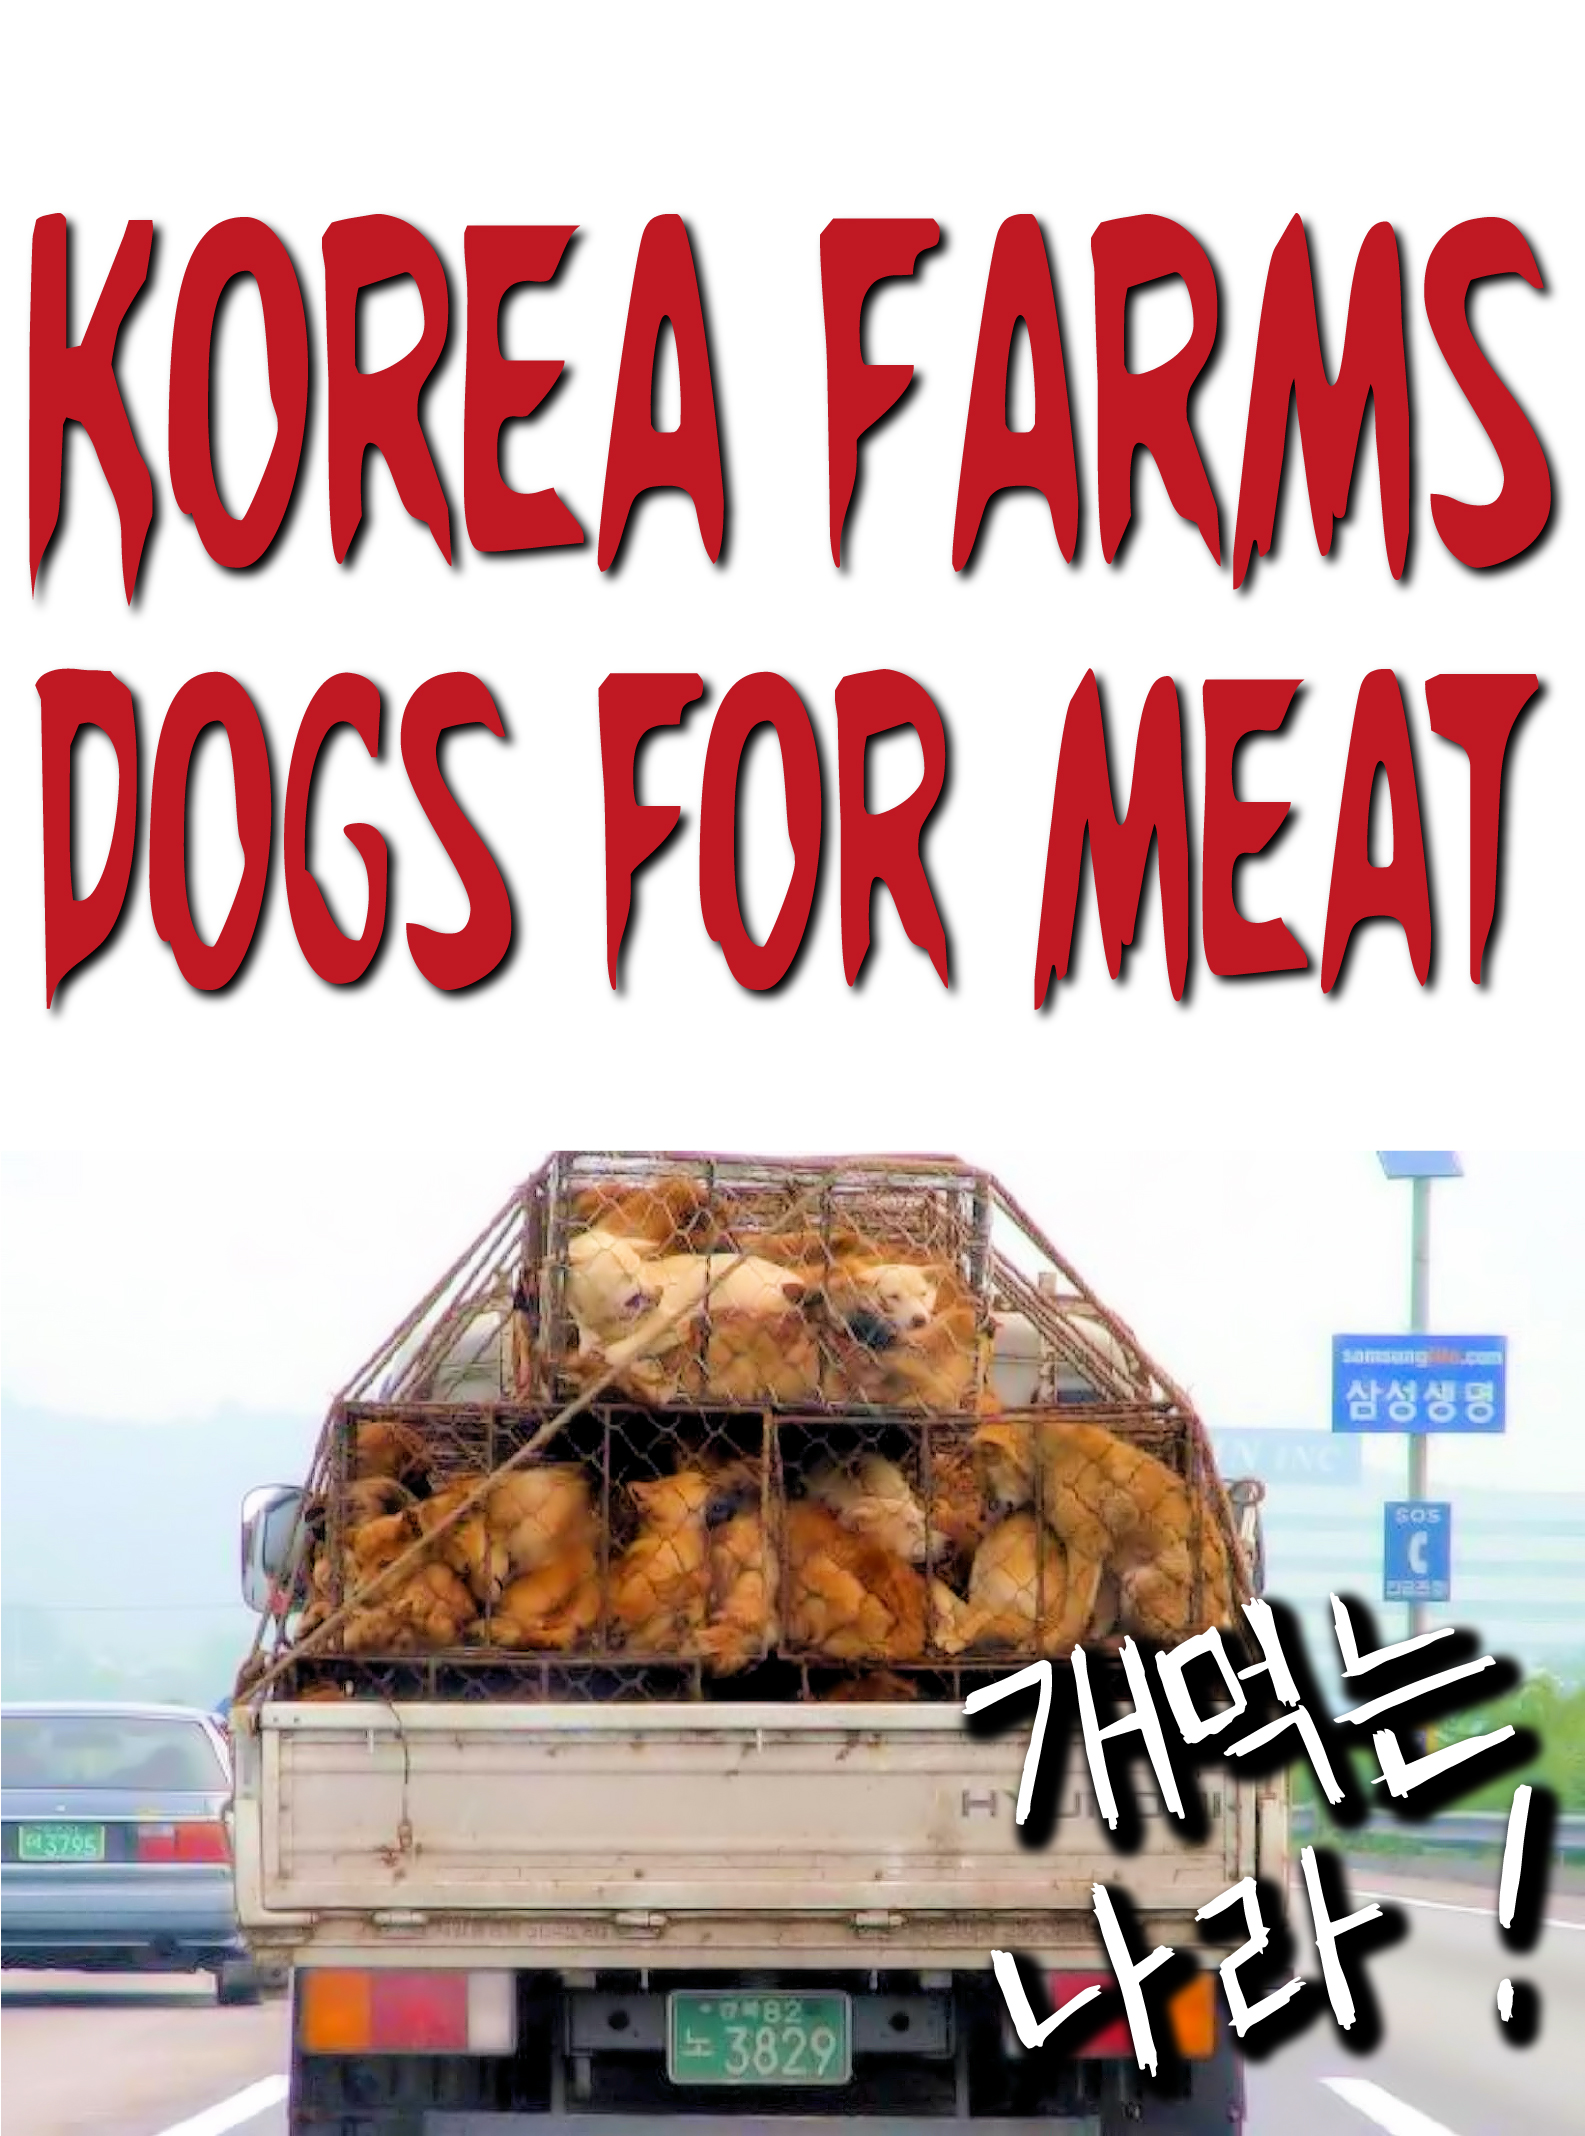 International sales: Korea Farms Dogs Protest Sign